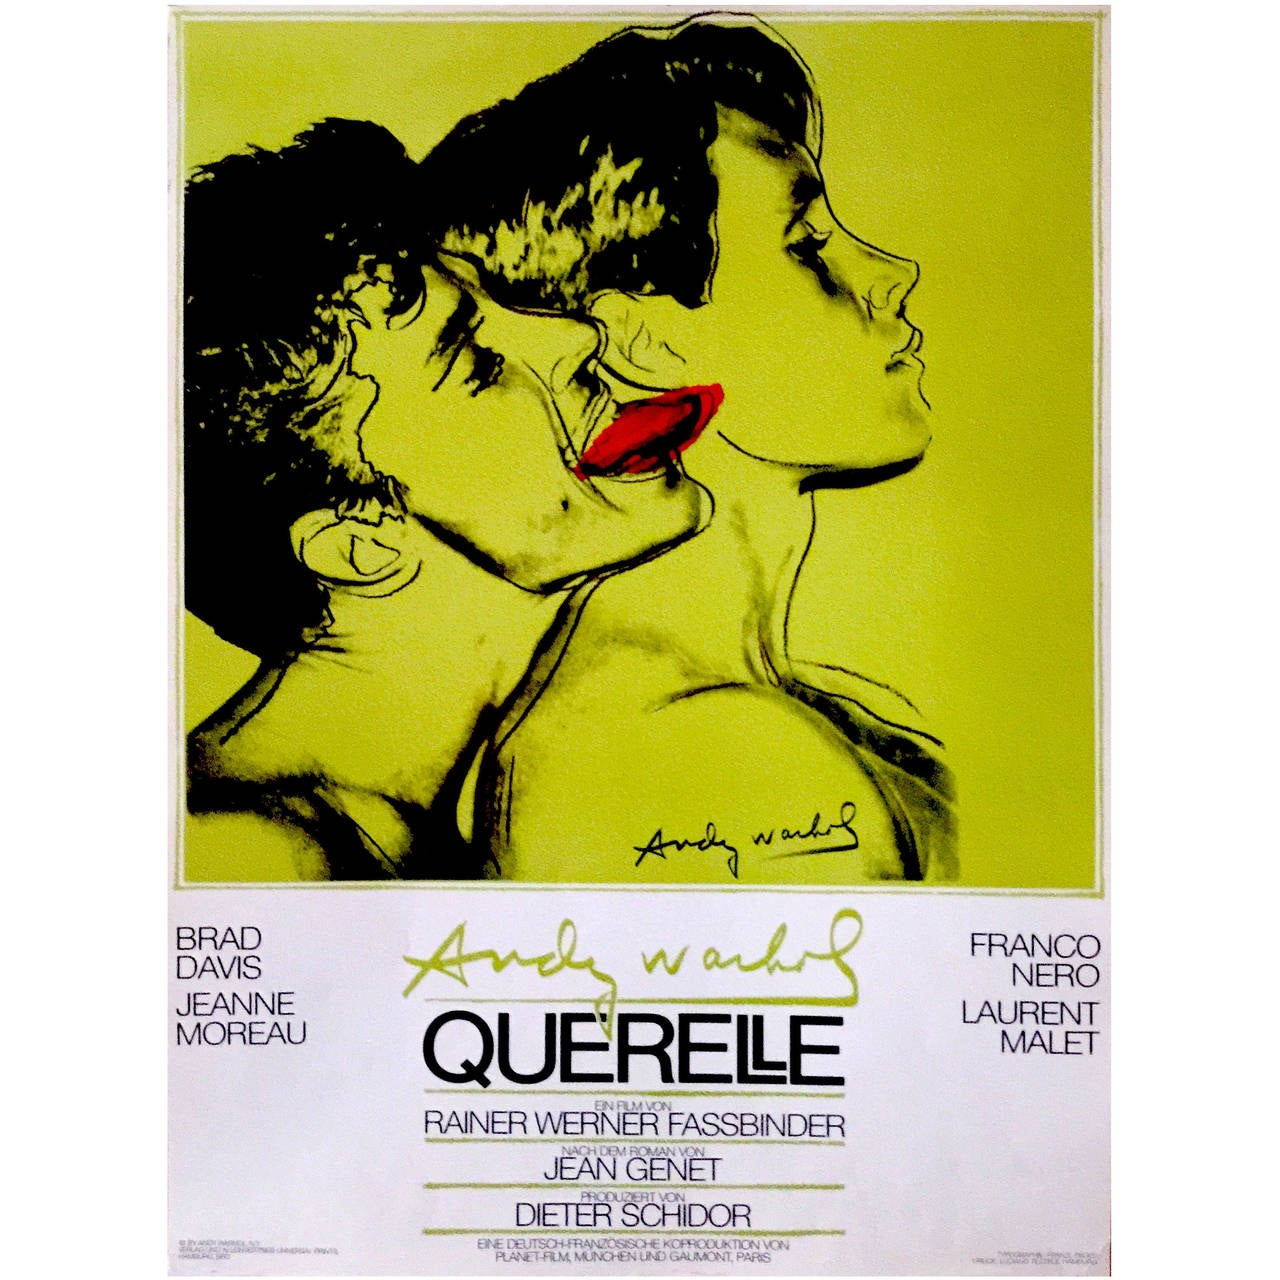 German Pop Period Movie Poster for Querelle 'Green' by Andy Warhol, 1982